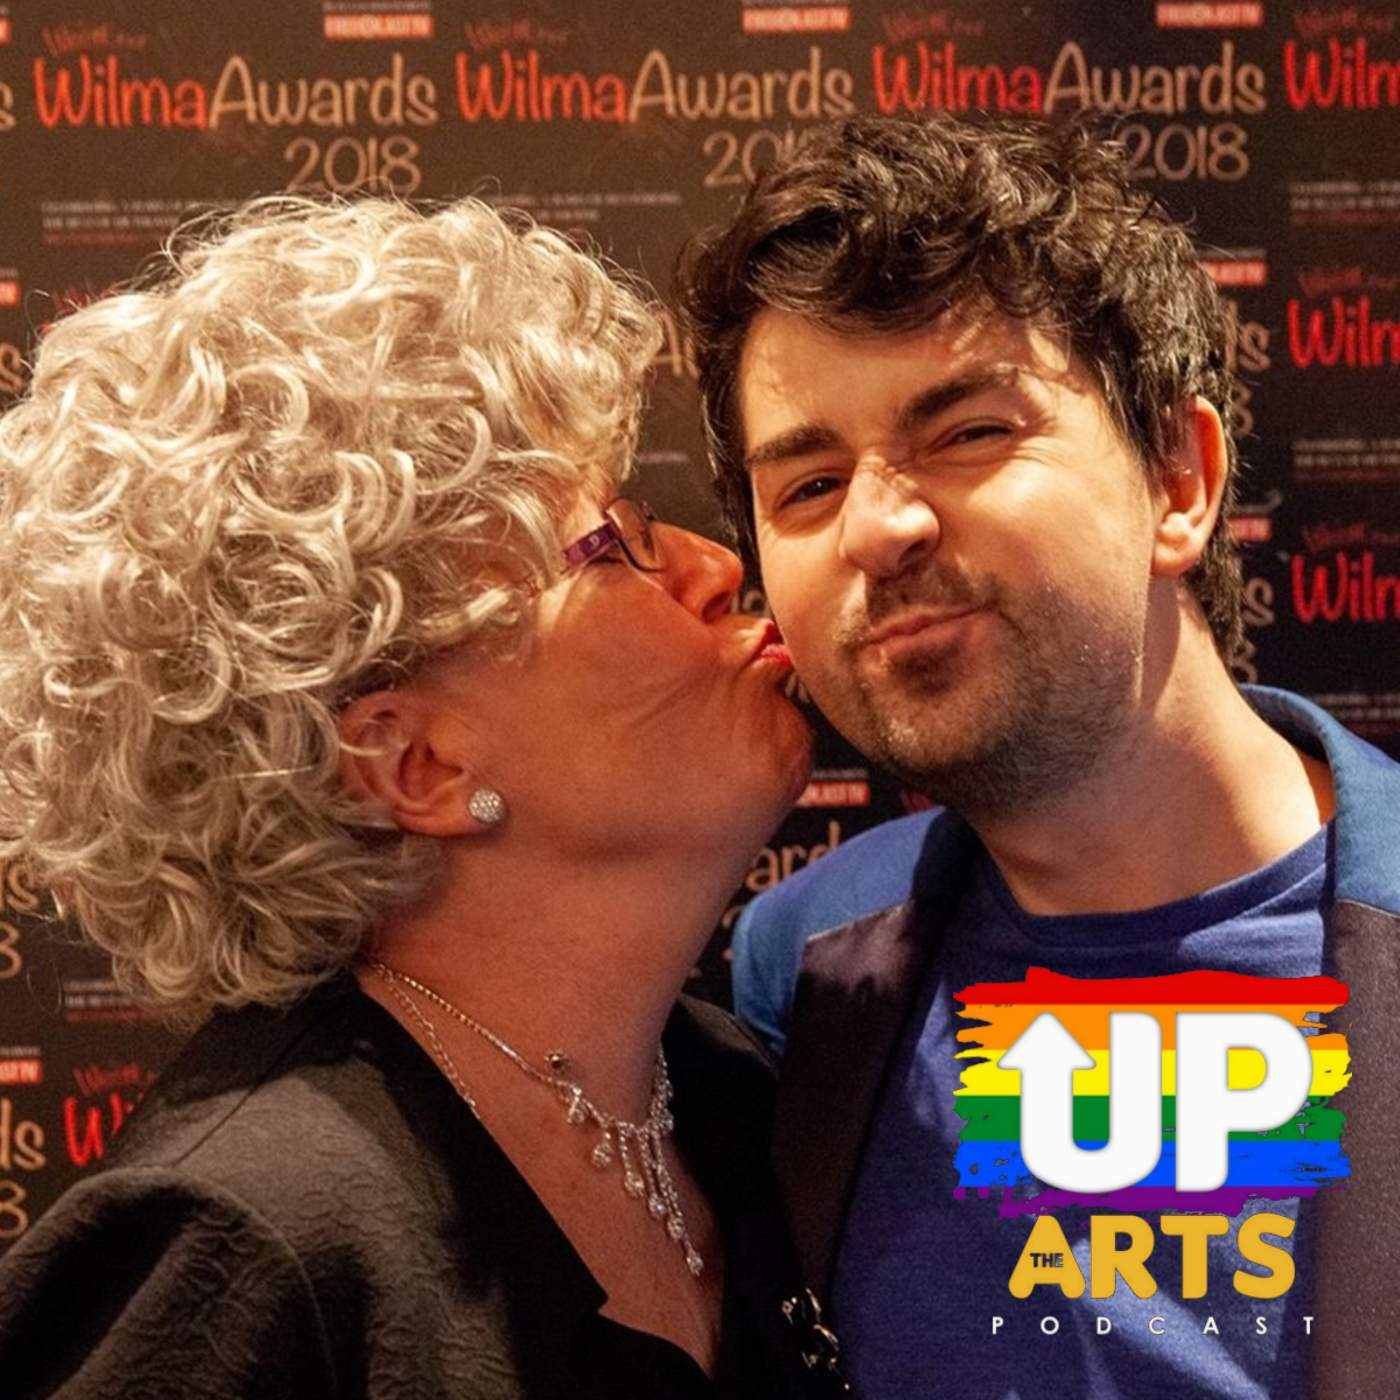 Up The Arts: Stuck Indoors - West End Wilma's Ed Baker on how to keep entertained on Covid-19 lockdown!